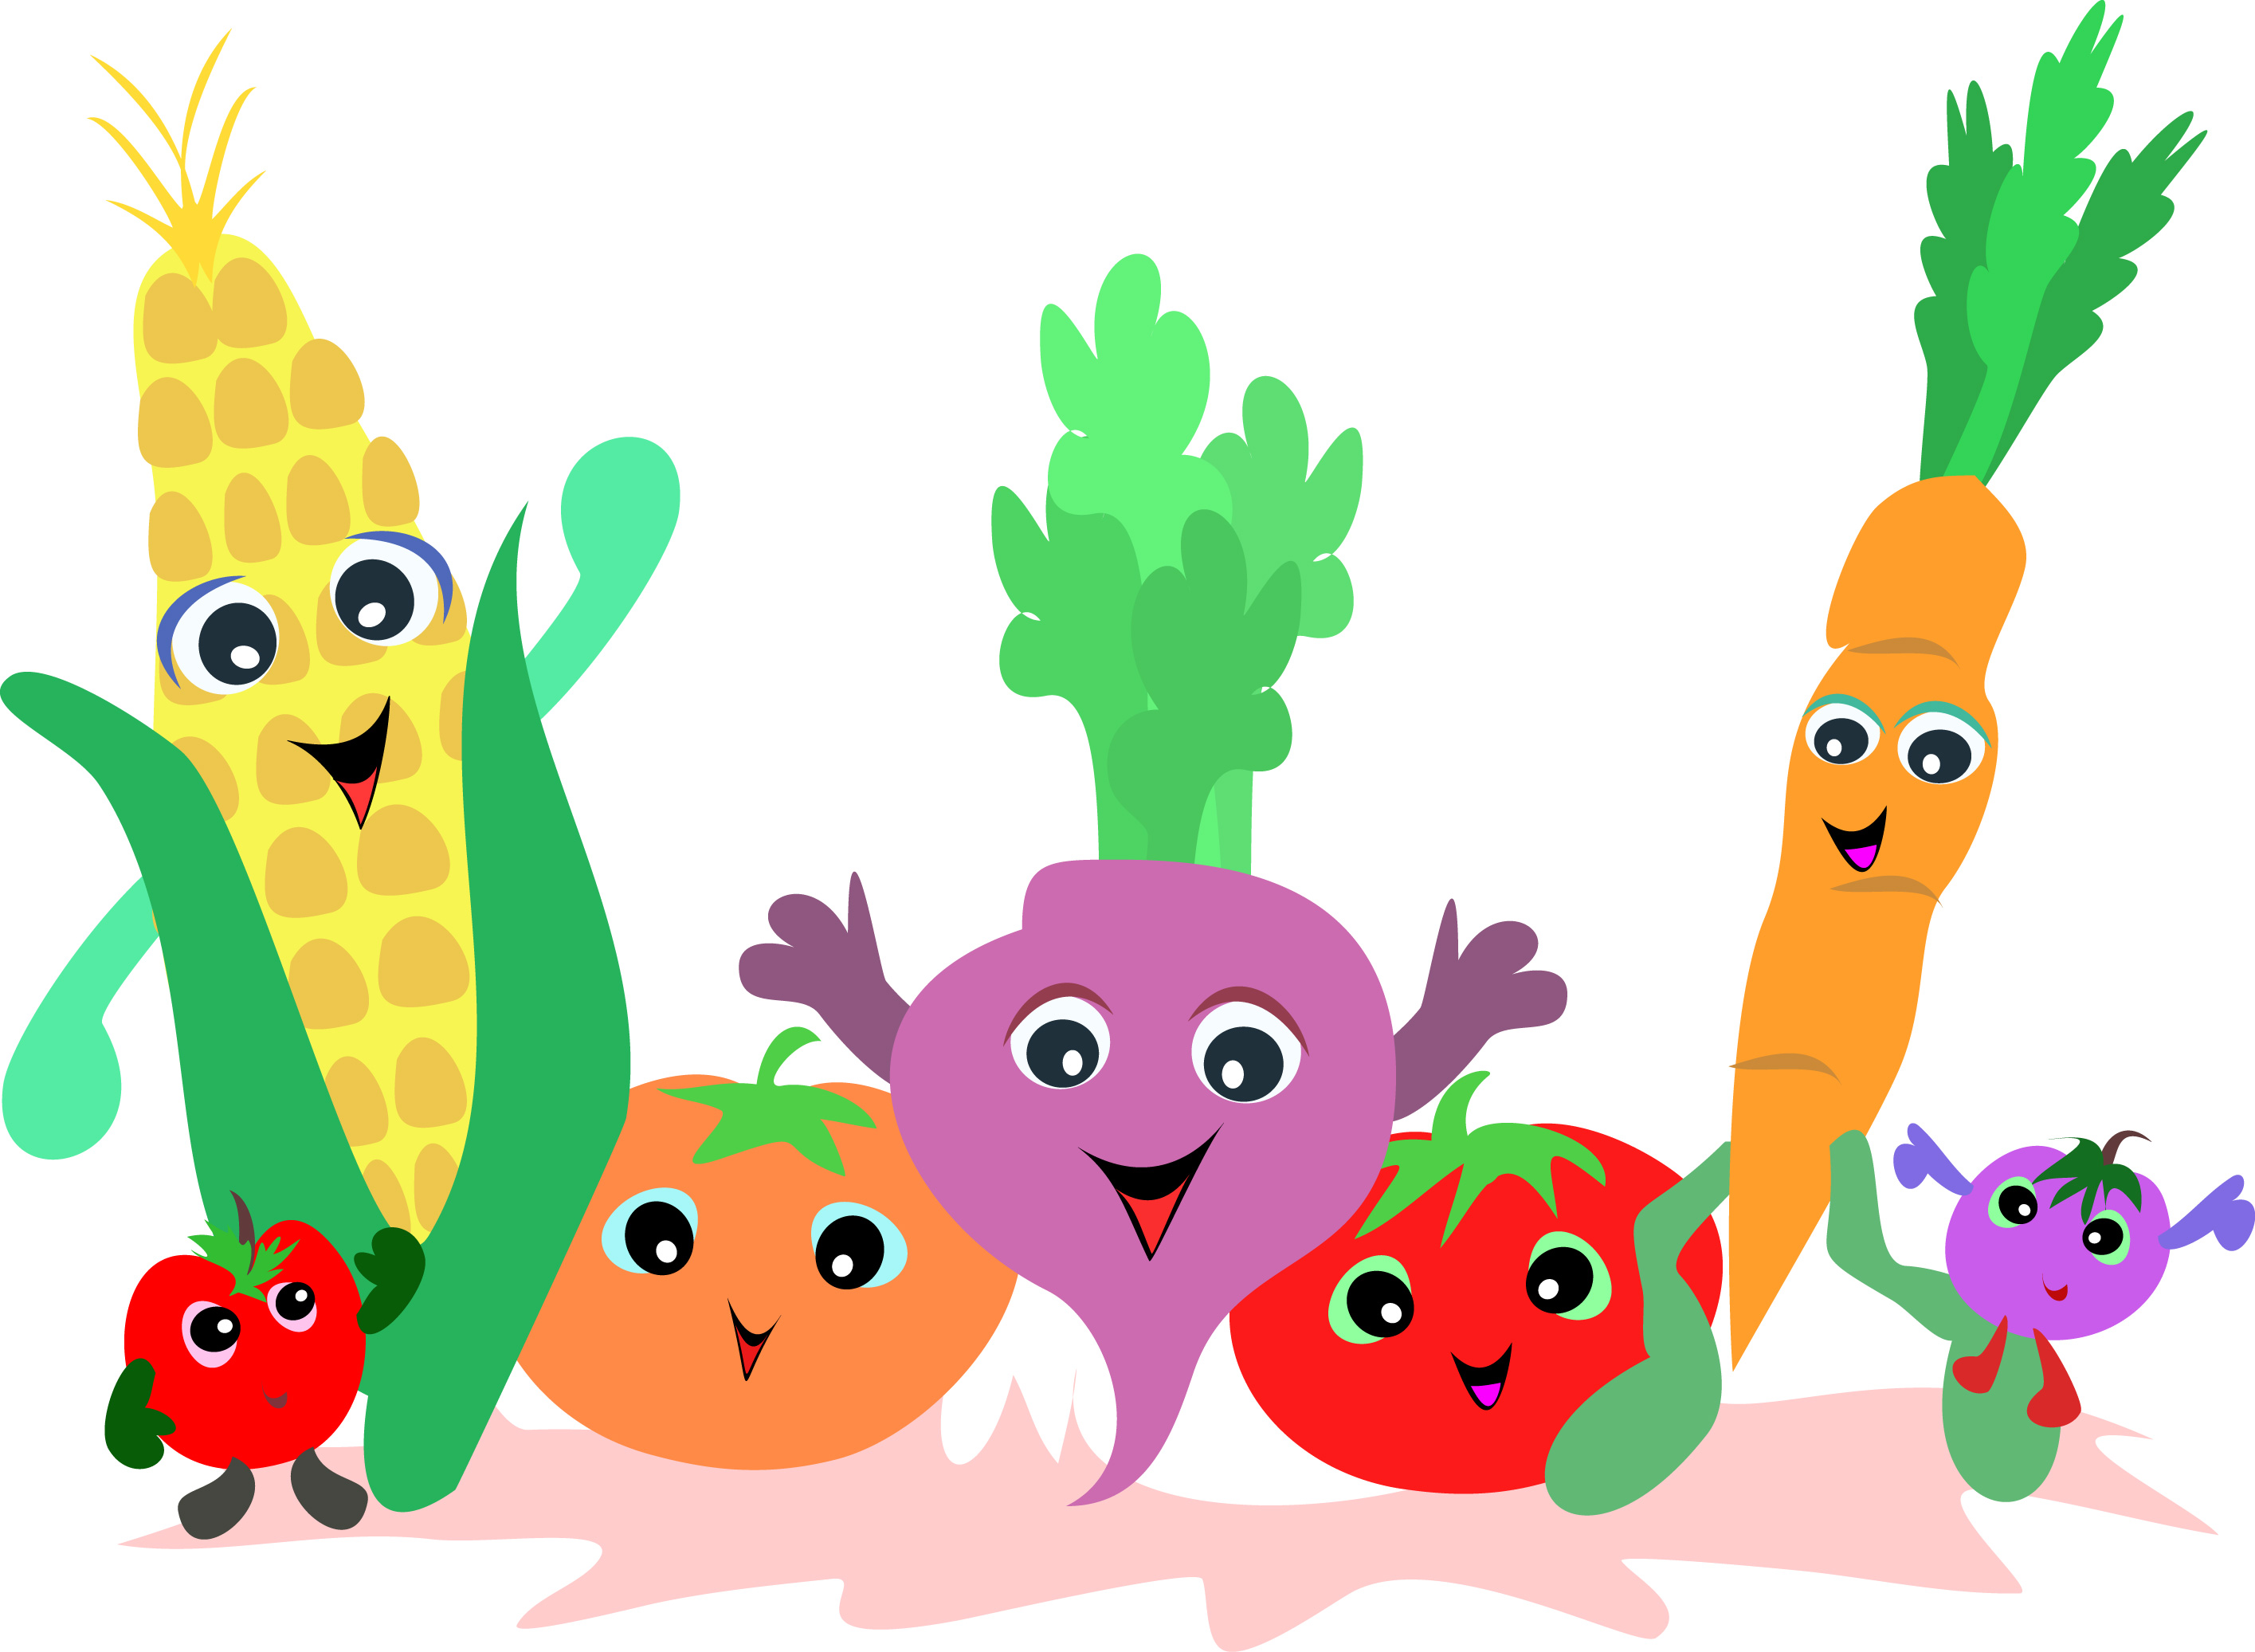 Cartoon vegetables clipart clipart stock Free Animated Vegetables Cliparts, Download Free Clip Art, Free Clip ... clipart stock